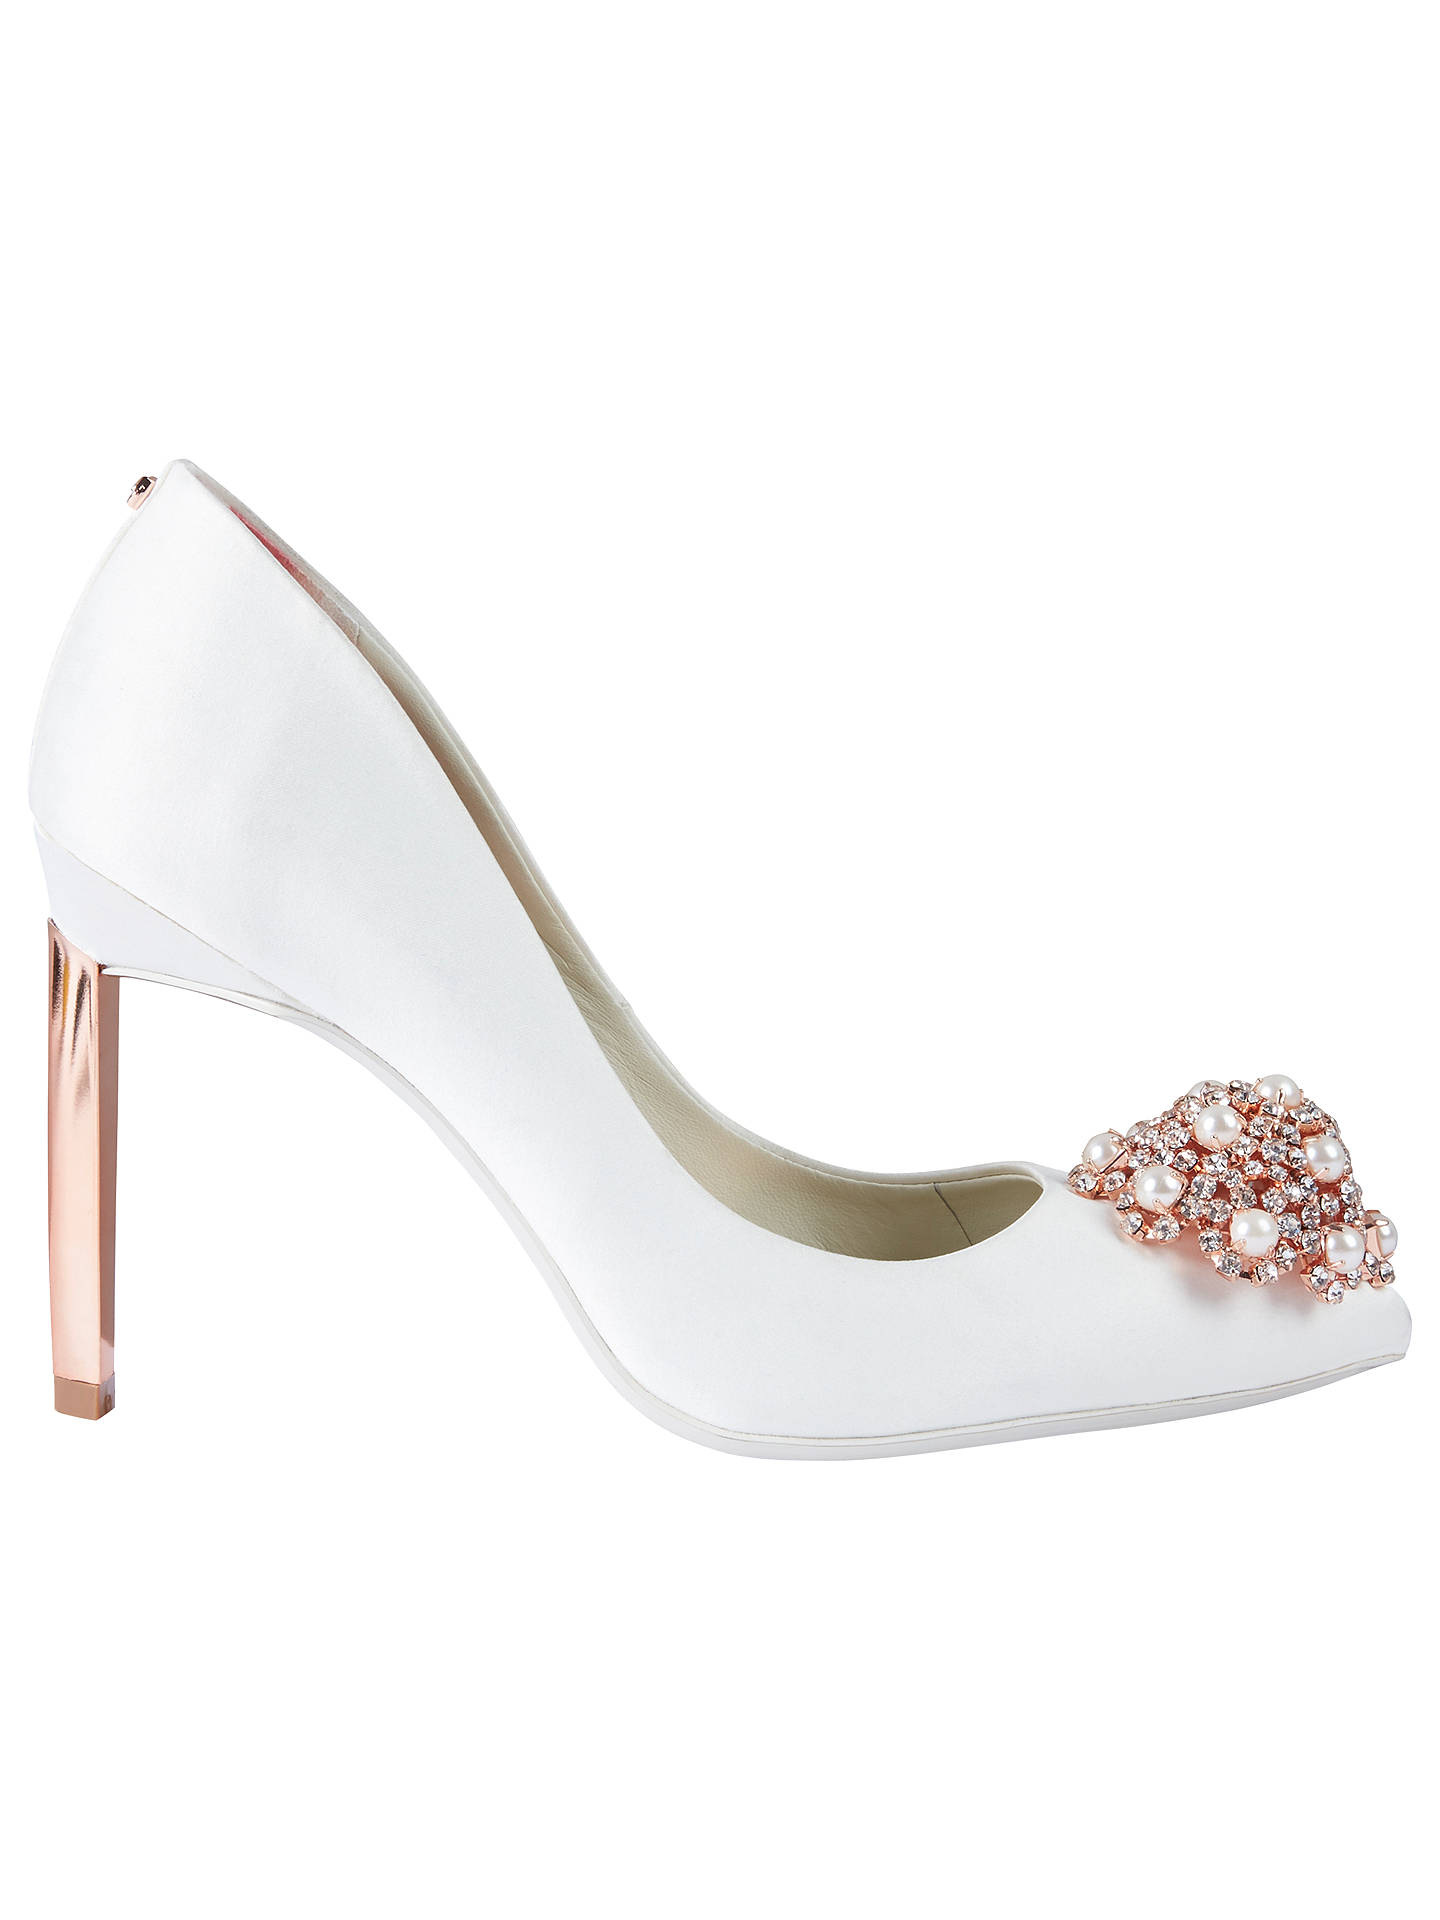 67126dec9 Buy Ted Baker Peetch 2 Embellished Stiletto Heel Court Shoes